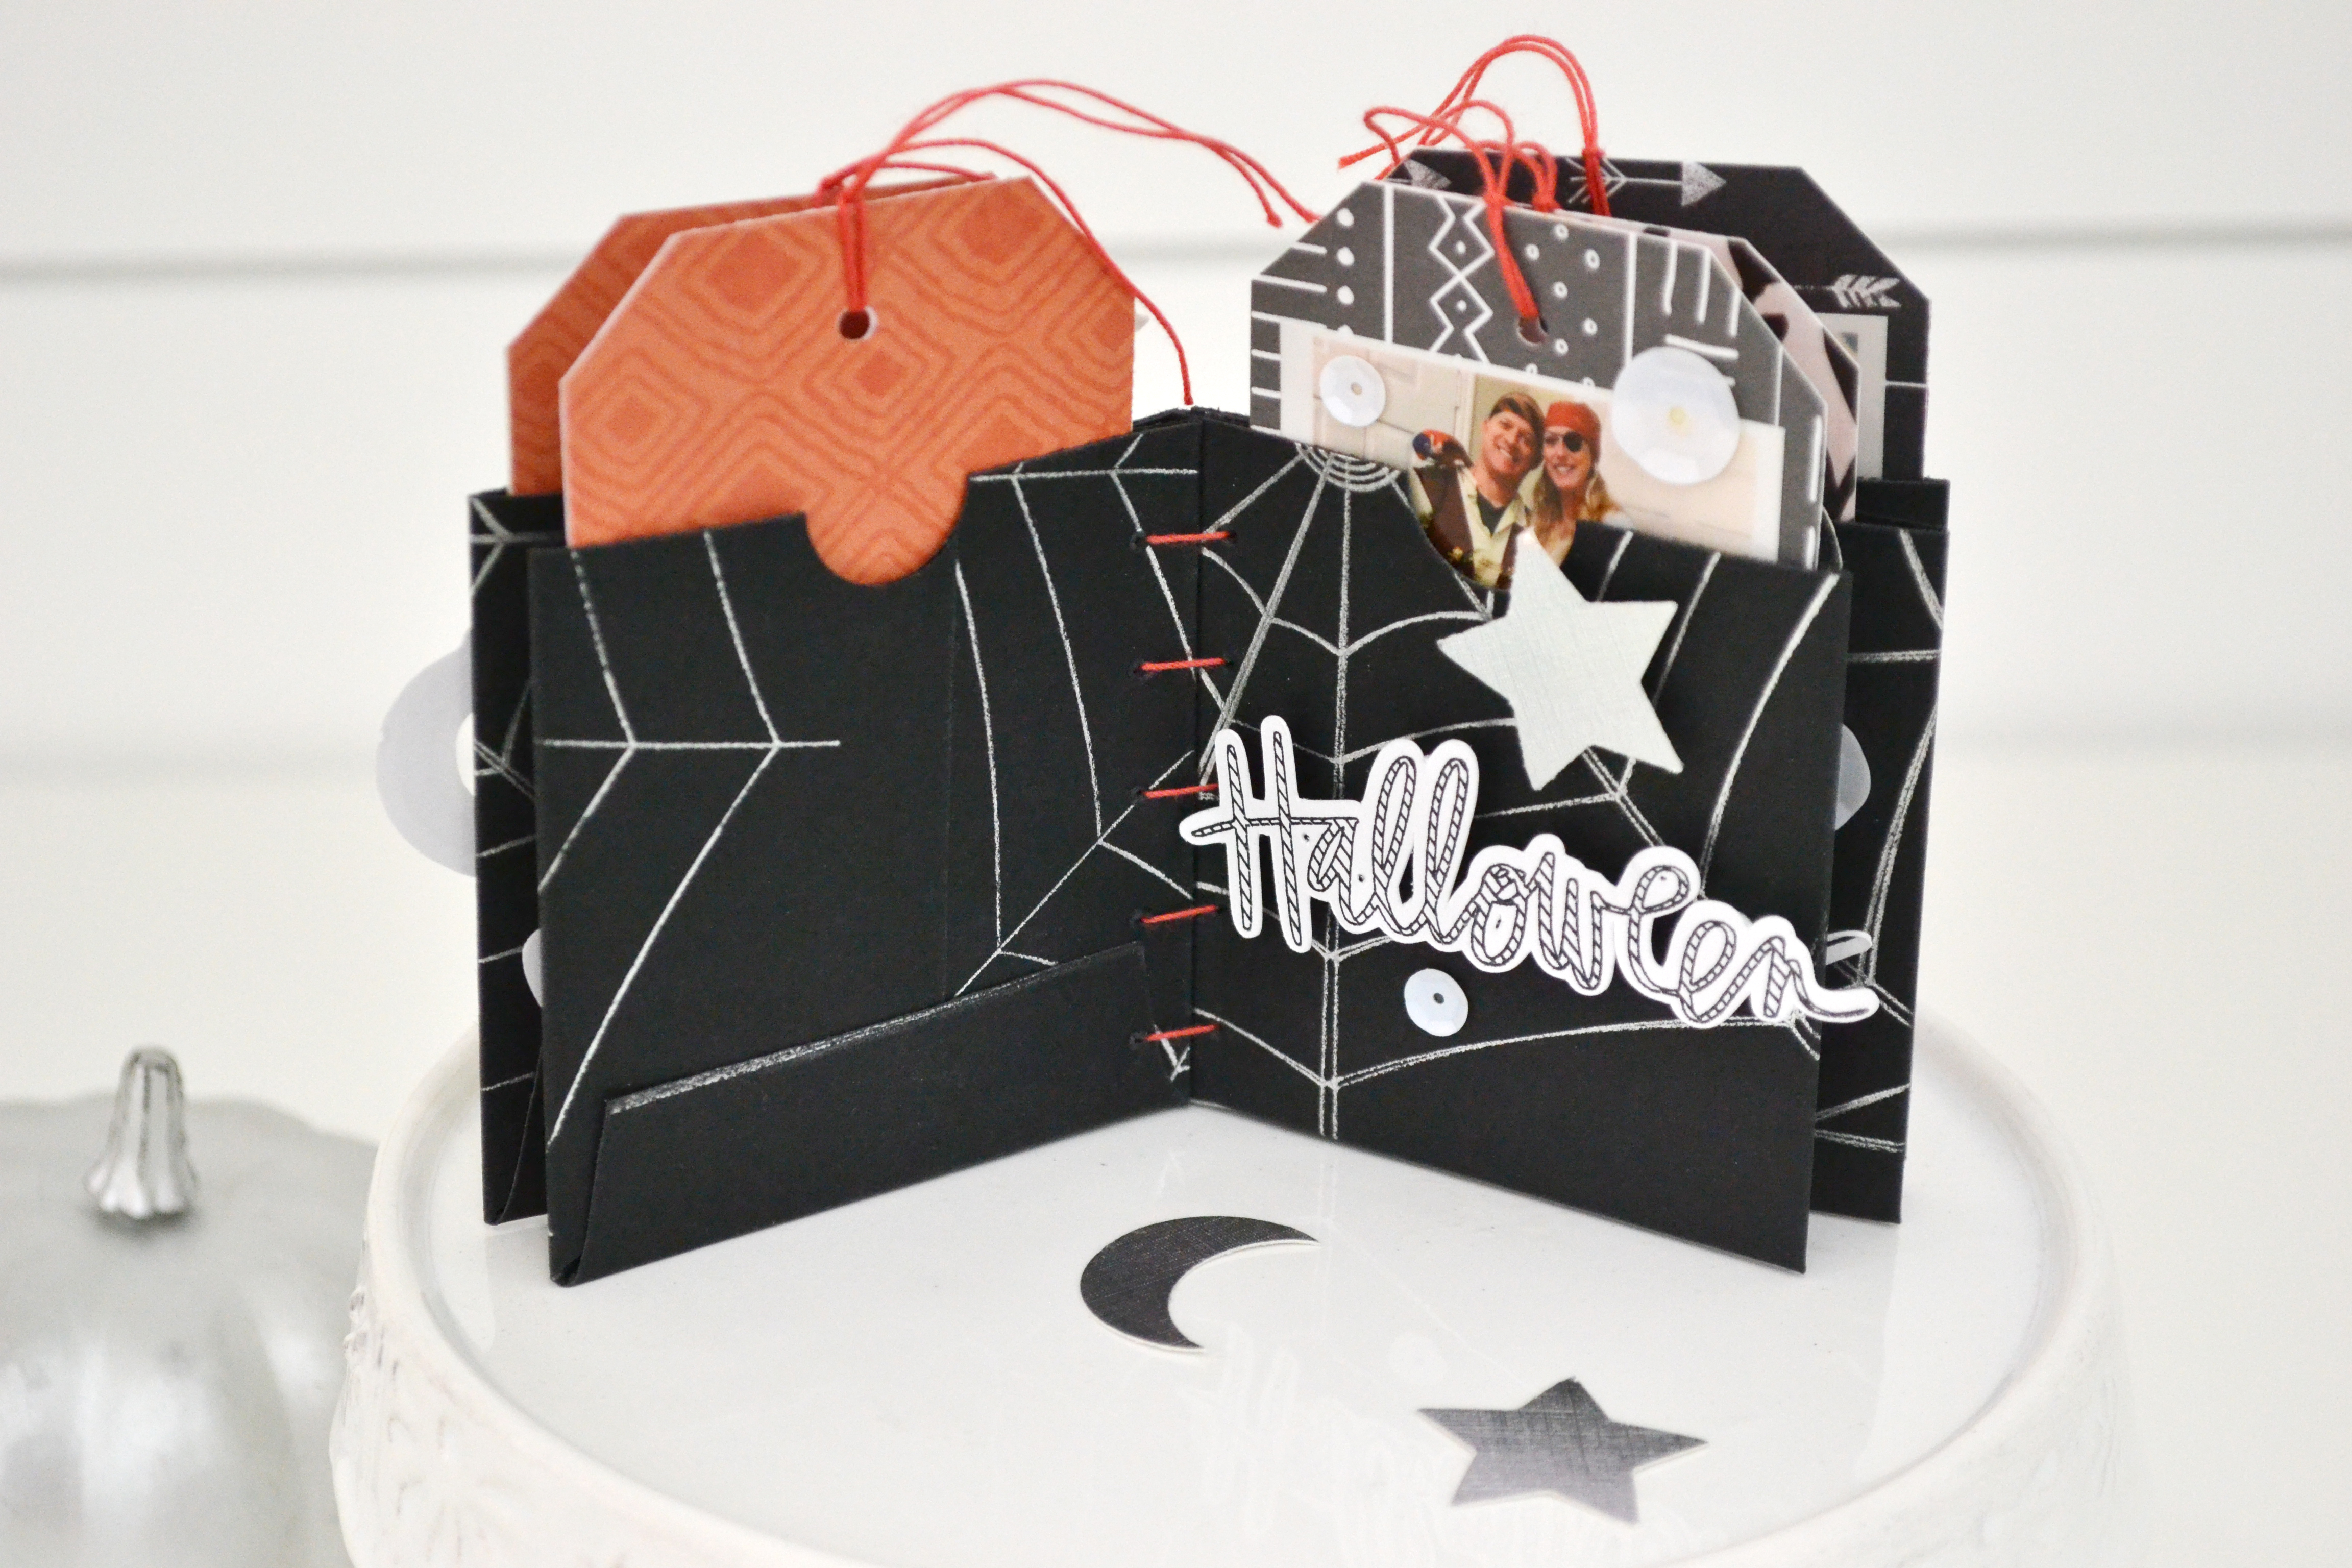 Halloween Mini Album with the Foil Quill by Aly Dosdall for We R Memory Keepers 8